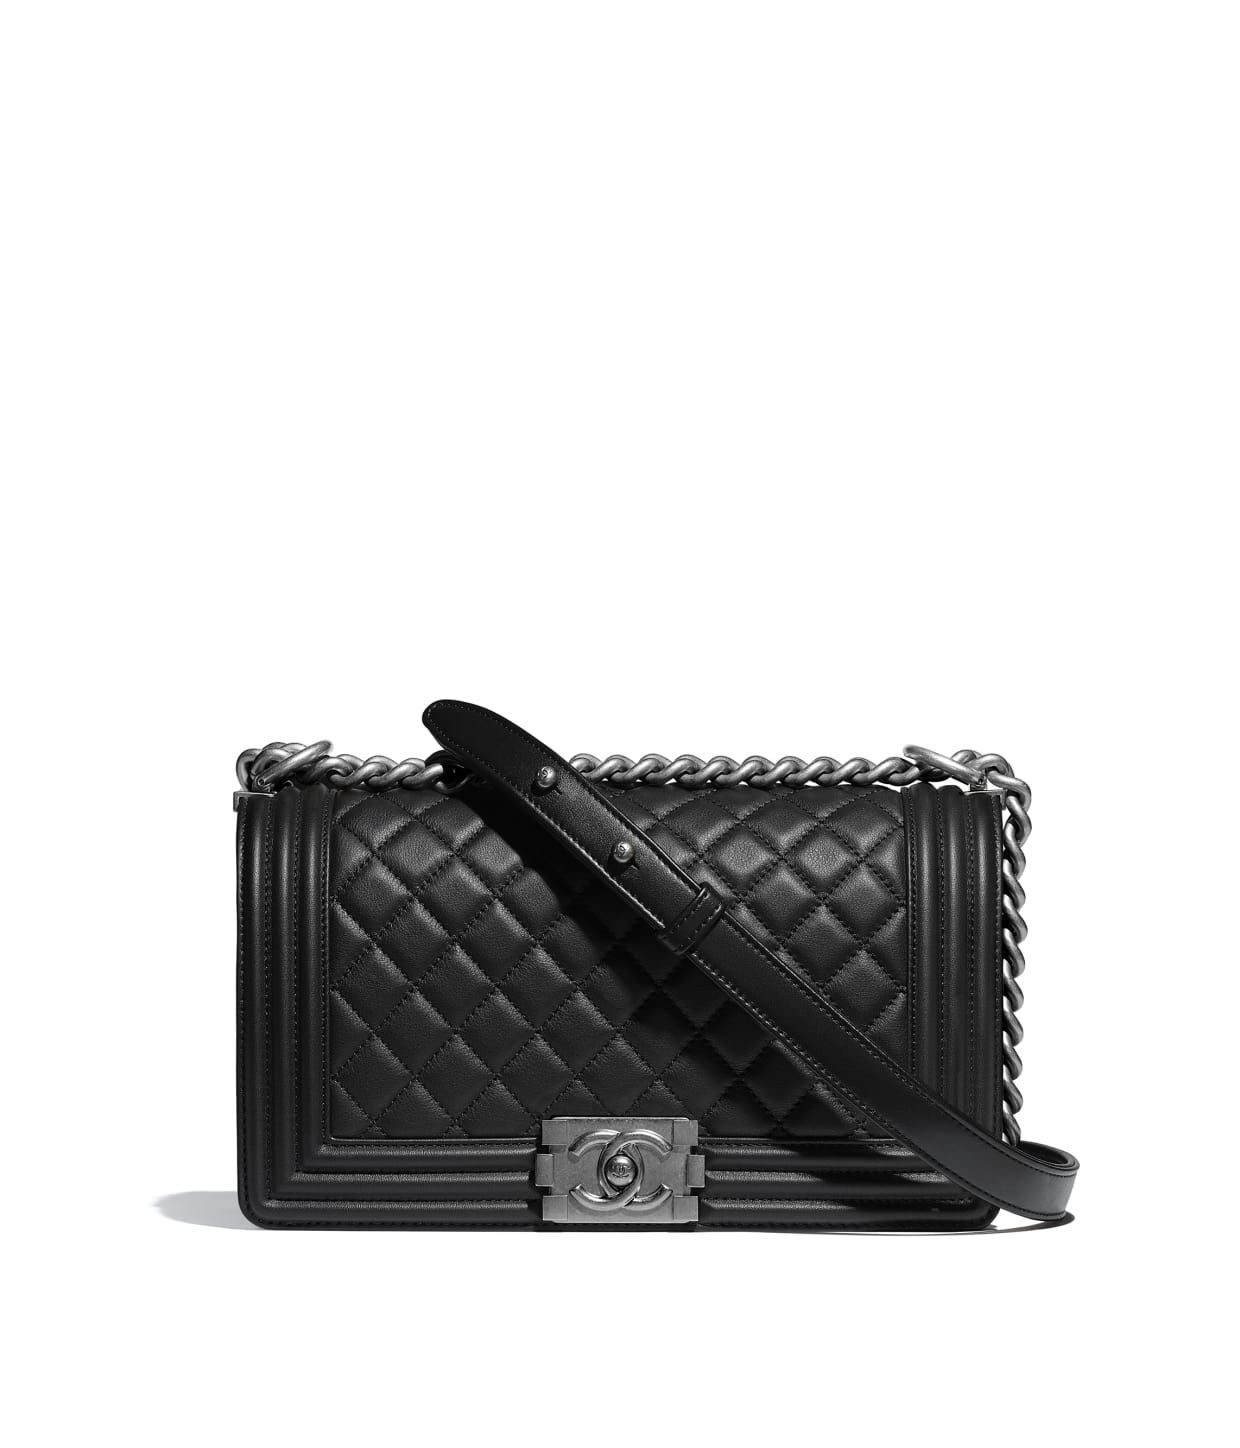 6c058bf8c12b8 Discover the CHANEL Calfskin & Ruthenium-Finish Metal Black BOY CHANEL  Handbag, and explore the artistry and craftsmanship of the House of CHANEL.